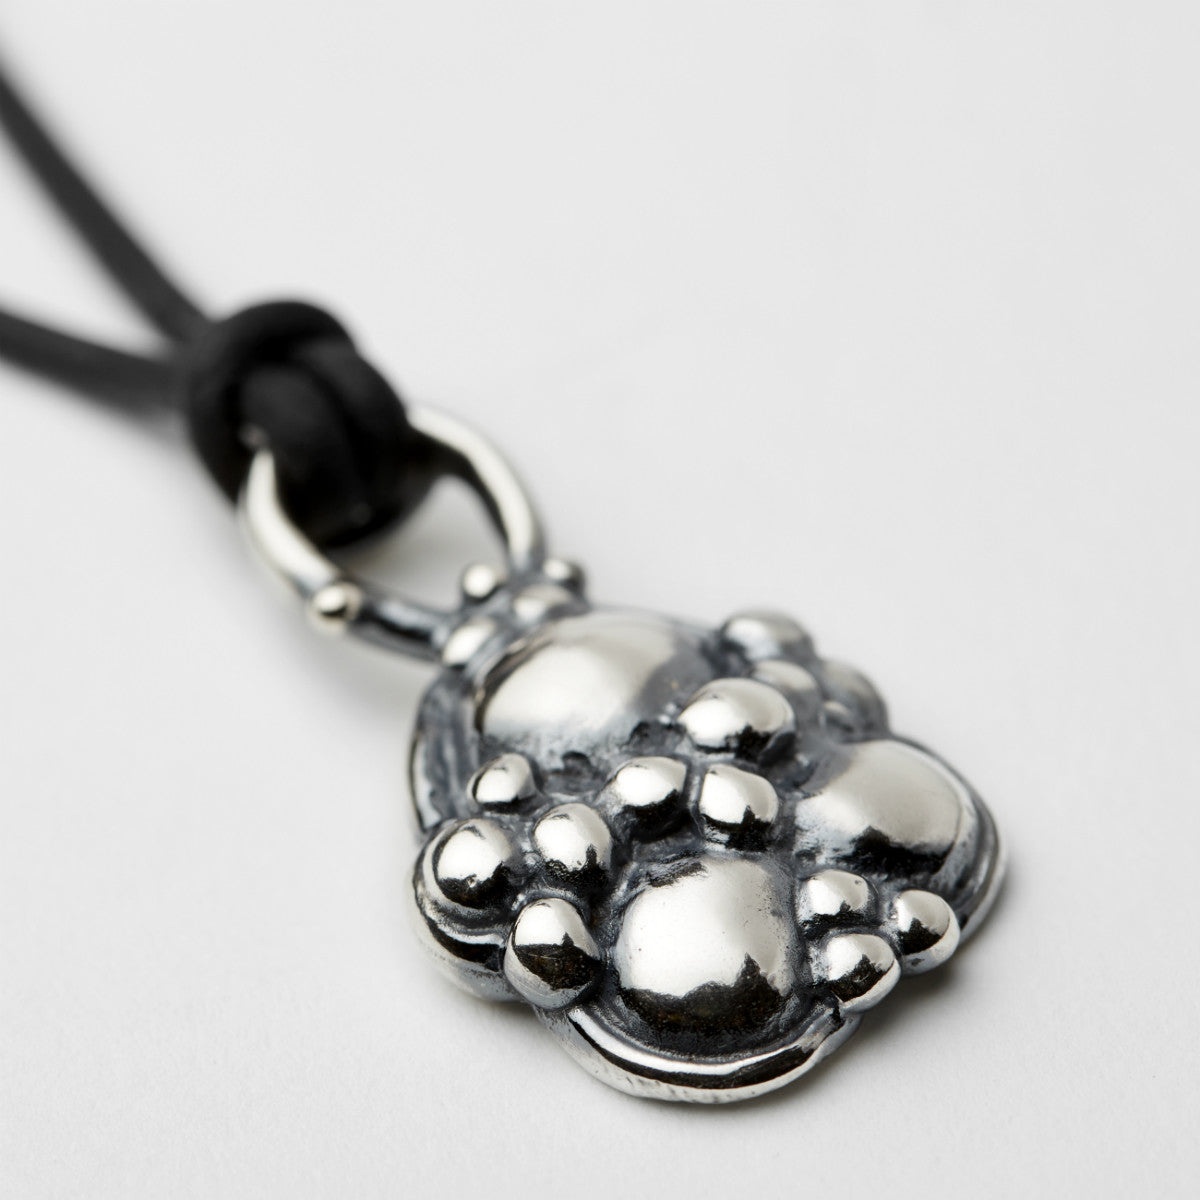 Synthesis Silver Necklace